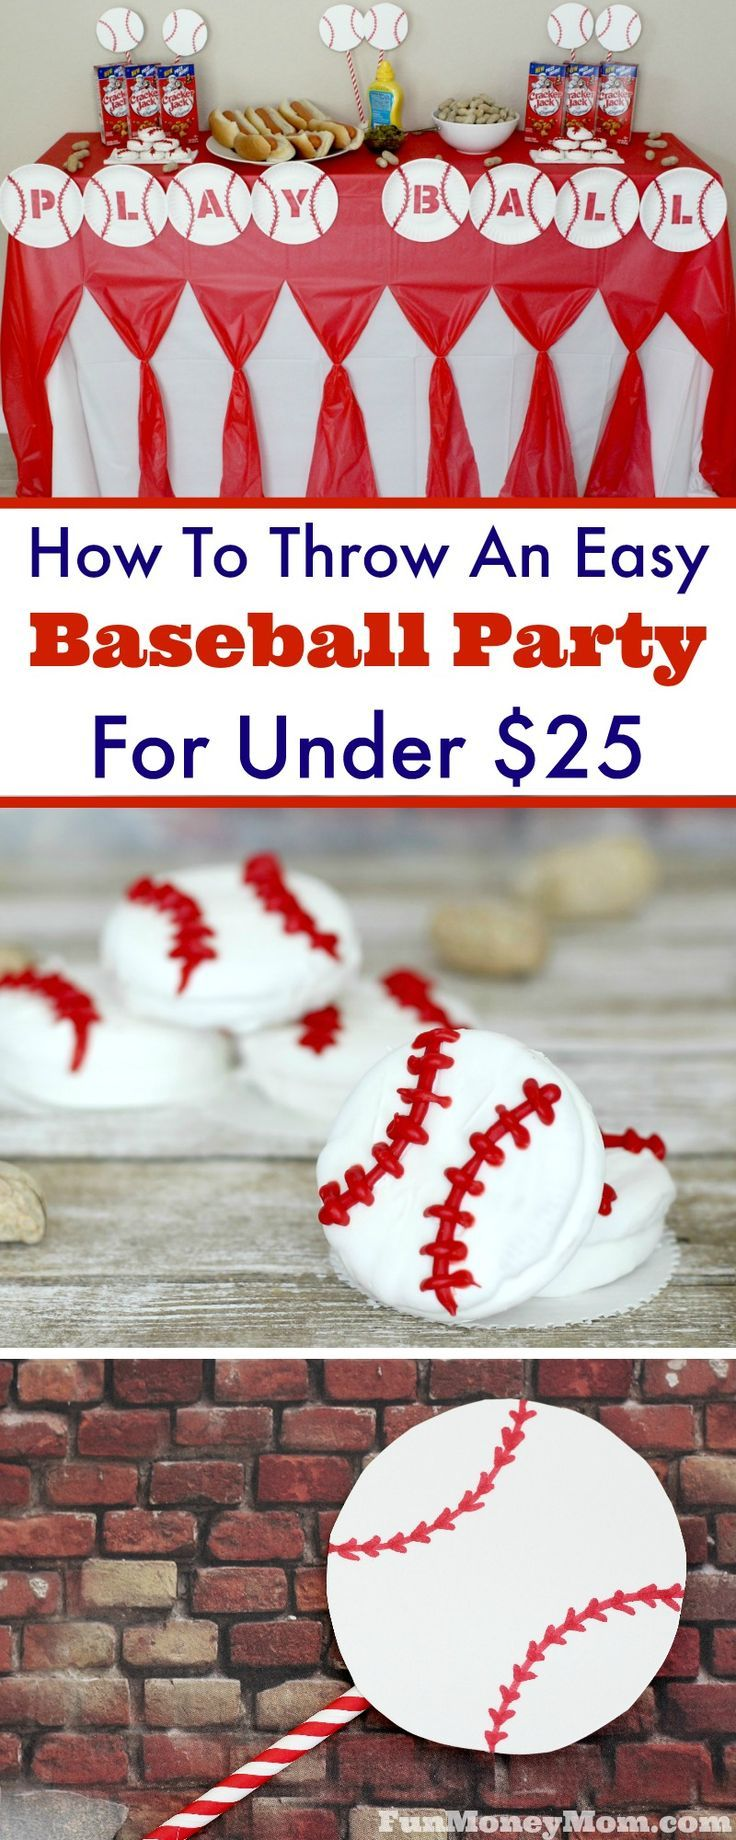 Want to plan a baseball party but don't want to break the budget? The good news is that it's really easy to do it on the cheap! From baseball food to decorations, you can throw a great party for under $25!